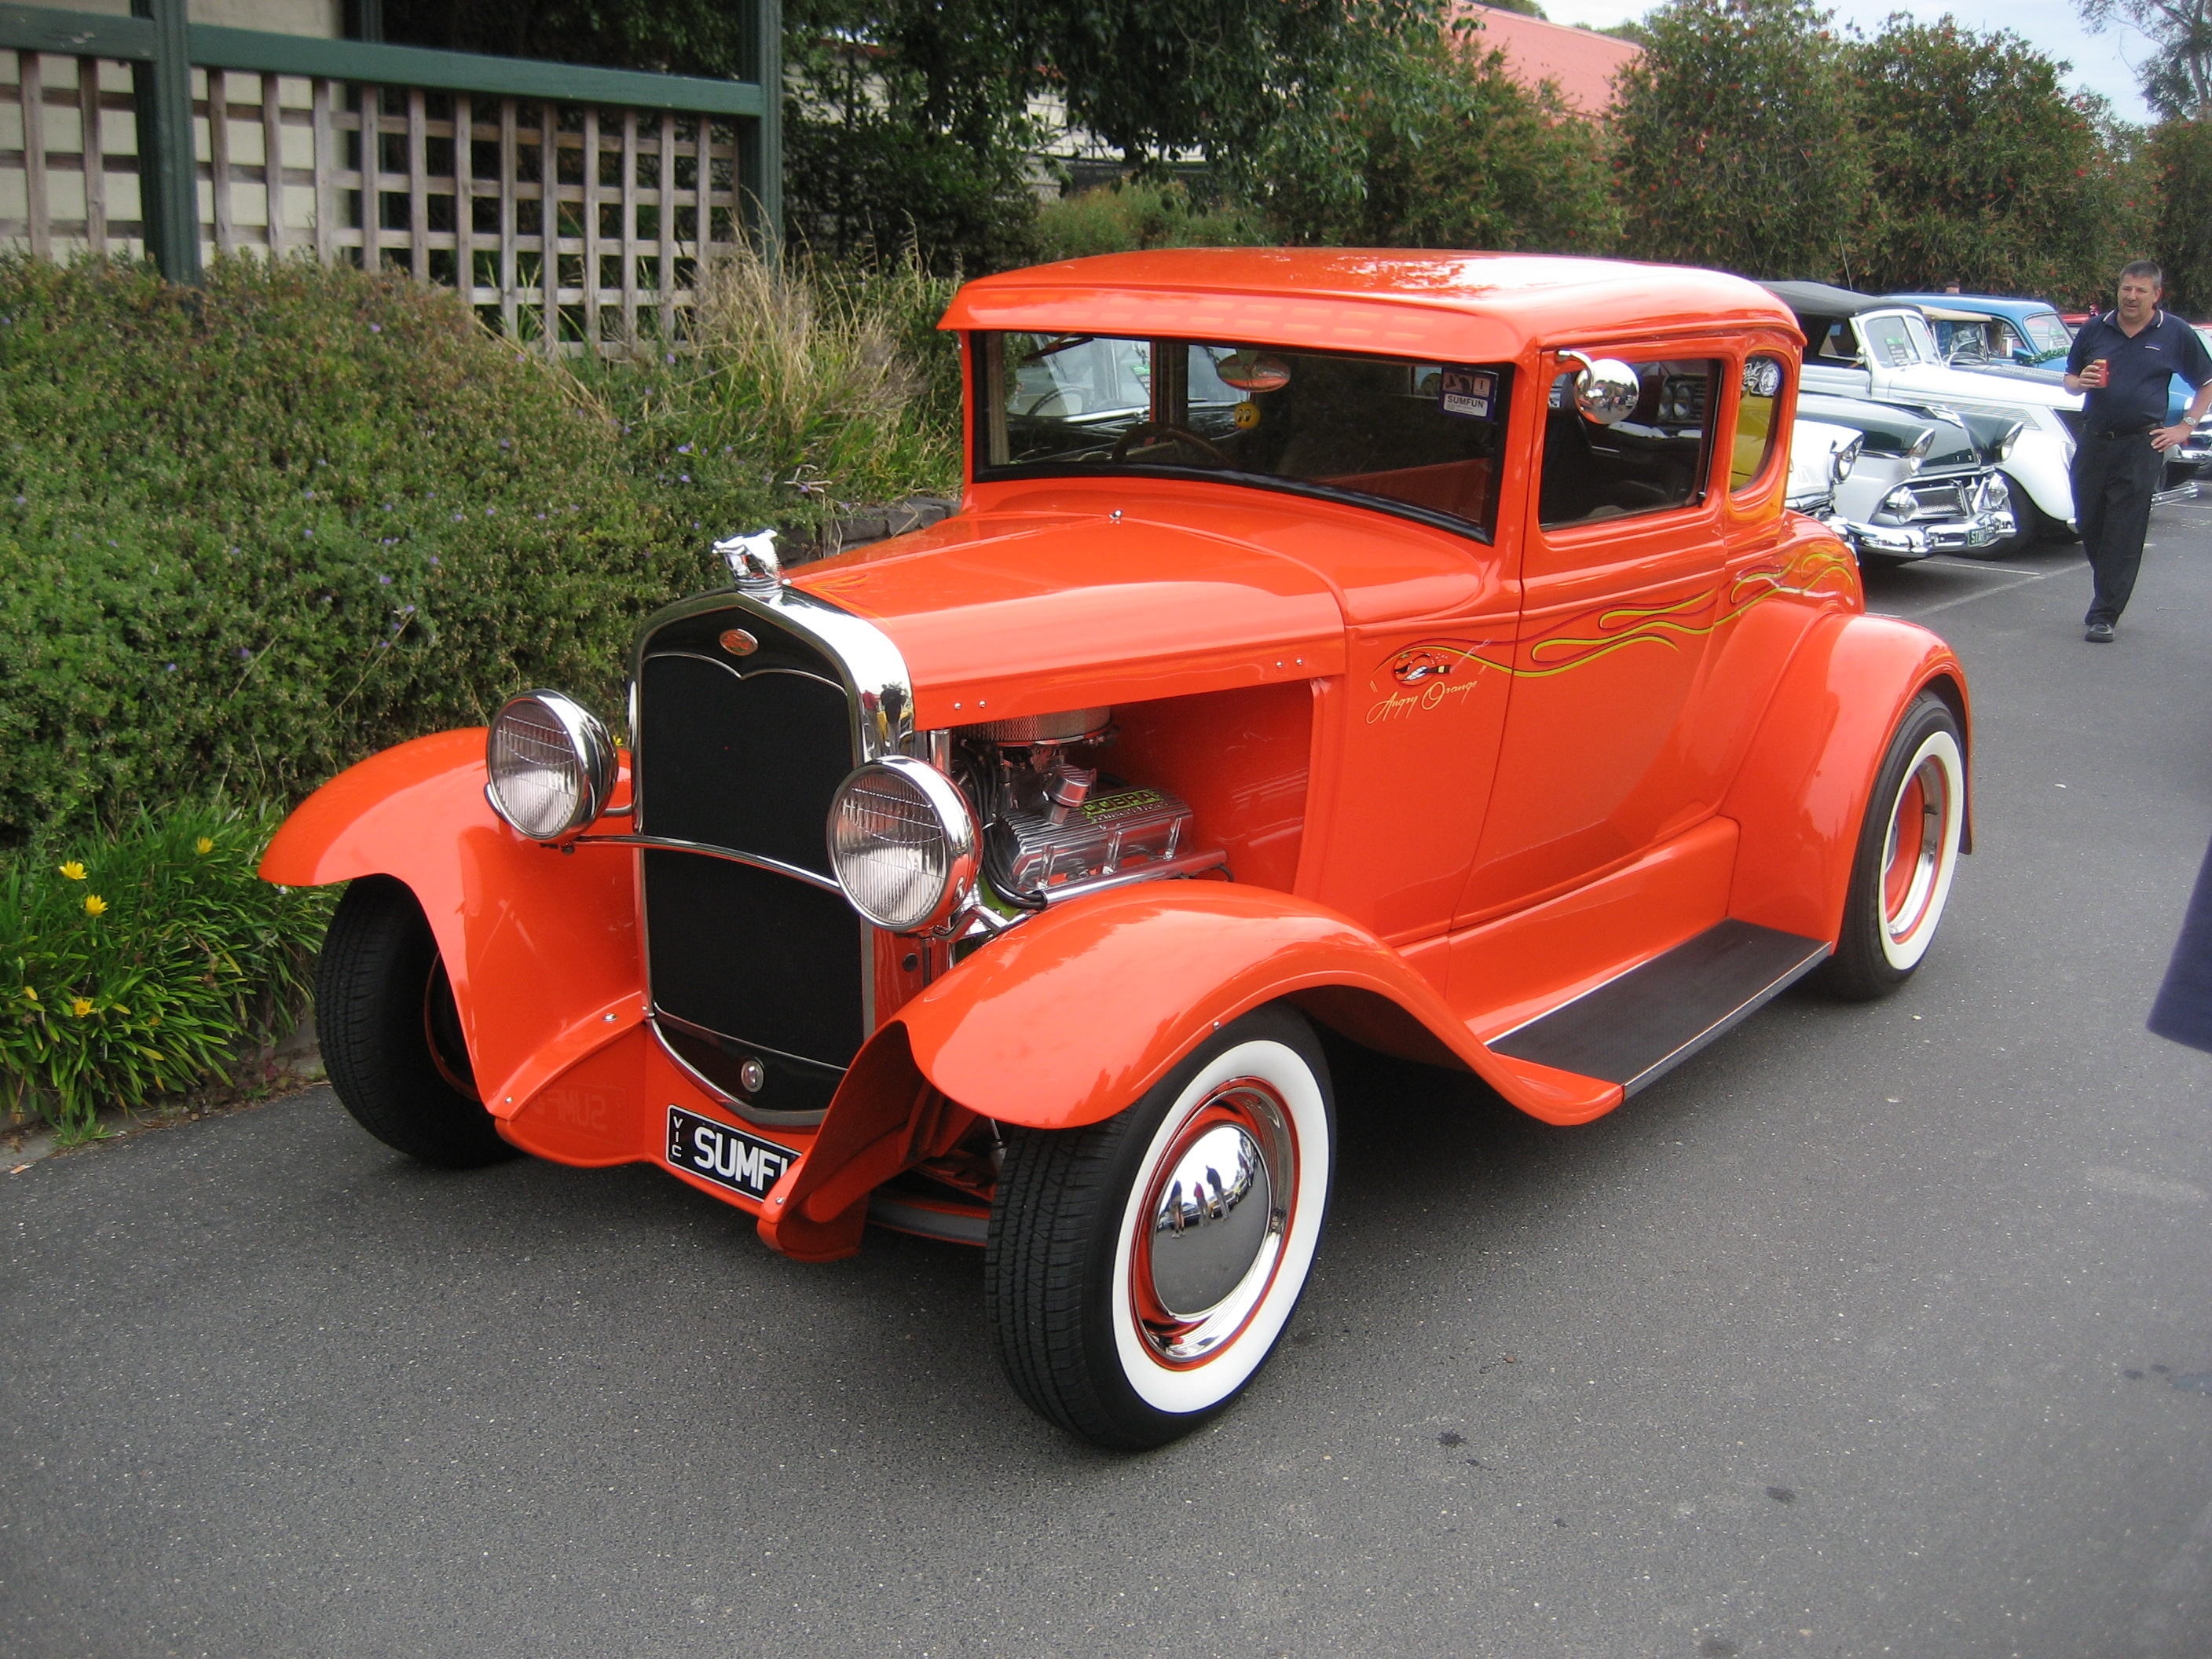 File:1930-31 Ford Model A Coupe Hot Rod.jpg - Wikimedia Commons